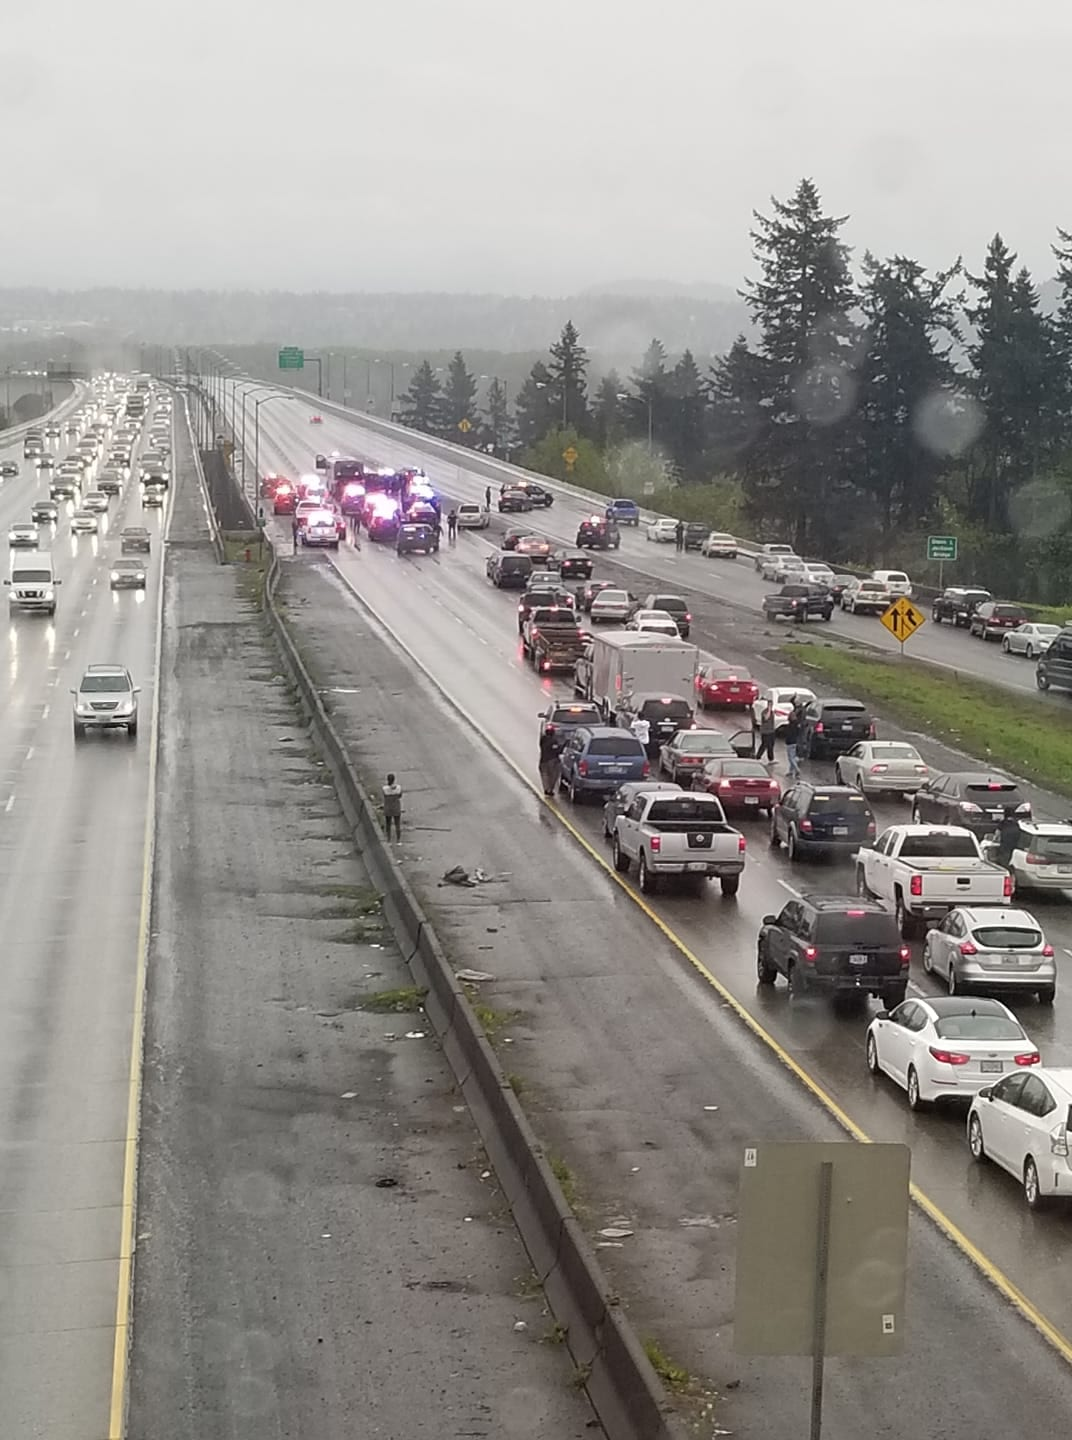 Vancouver Police surround a C-TRAN bus on I-205 after it was hijacked by a man claiming to have a gun Friday night. Photo courtesy Emily Wright